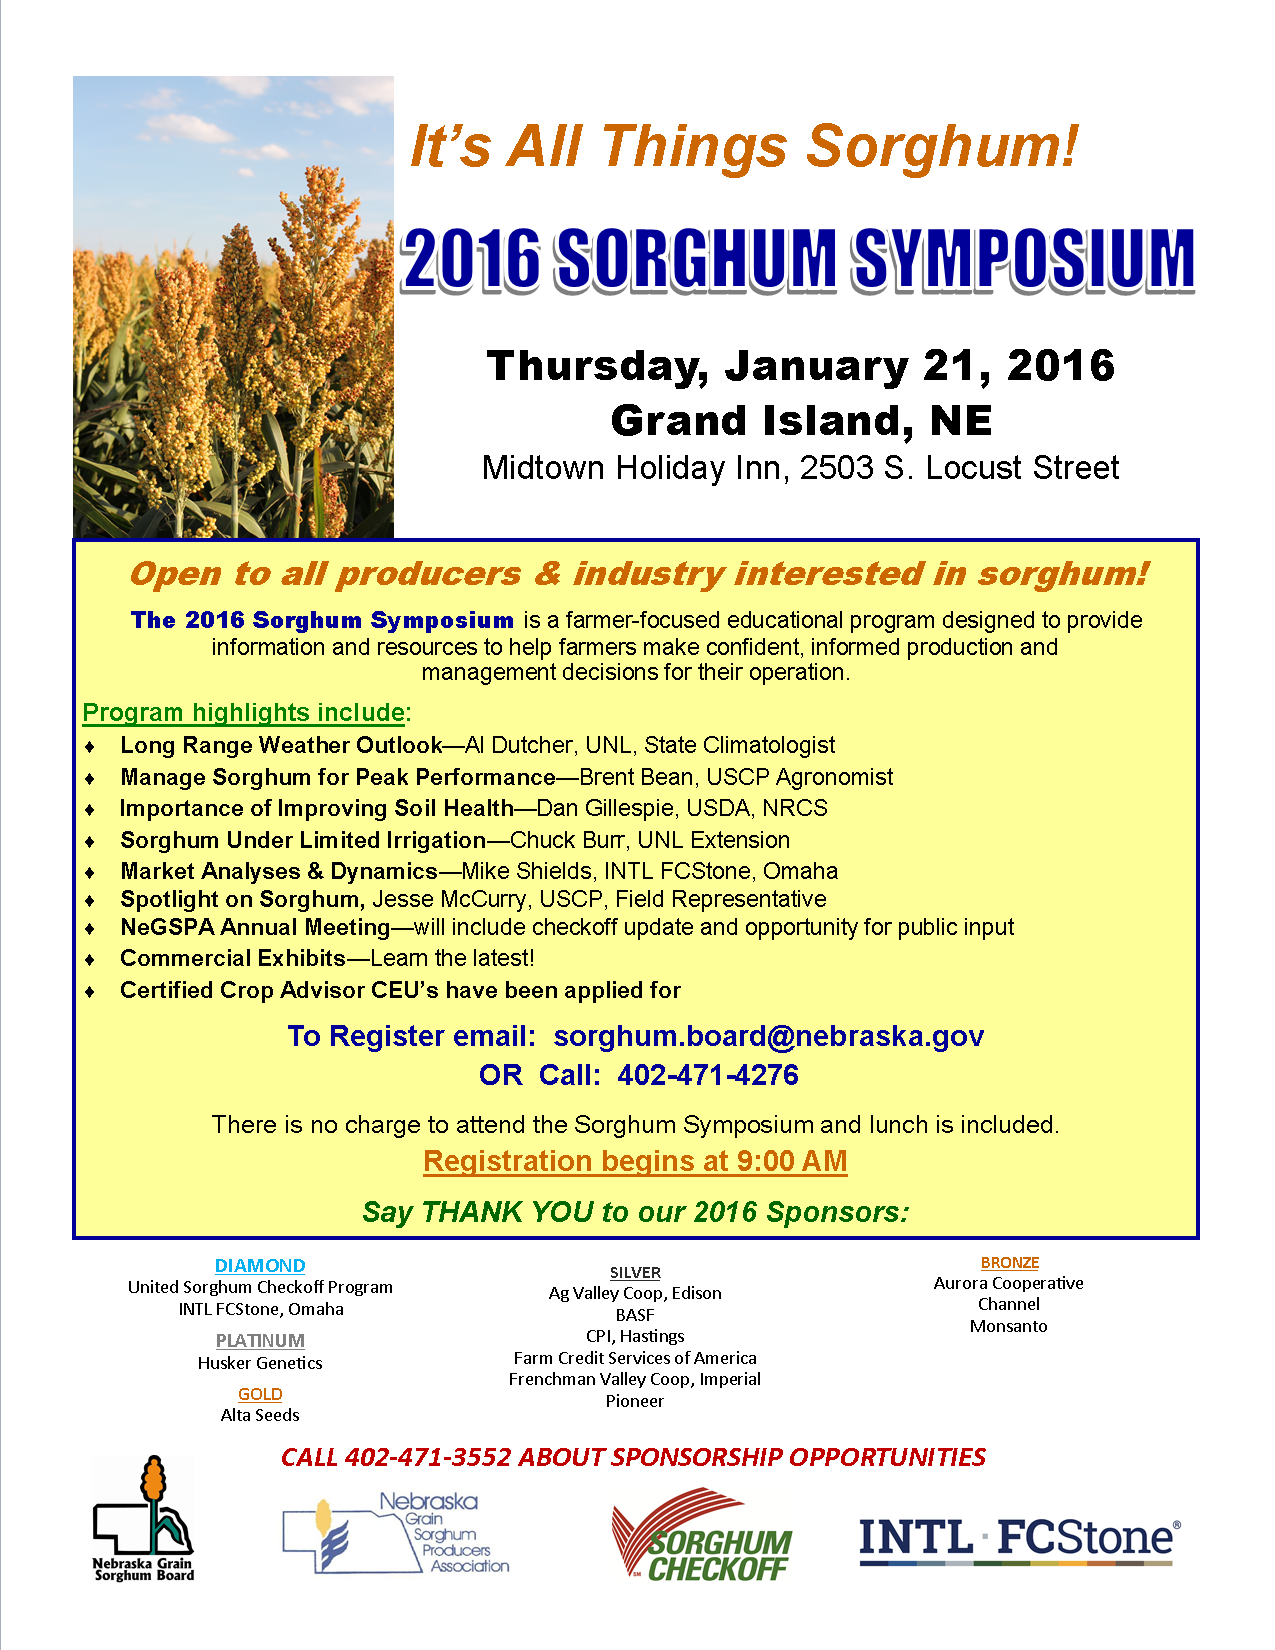 2016 Sorghum Symposium - Flyer - 12.30.15